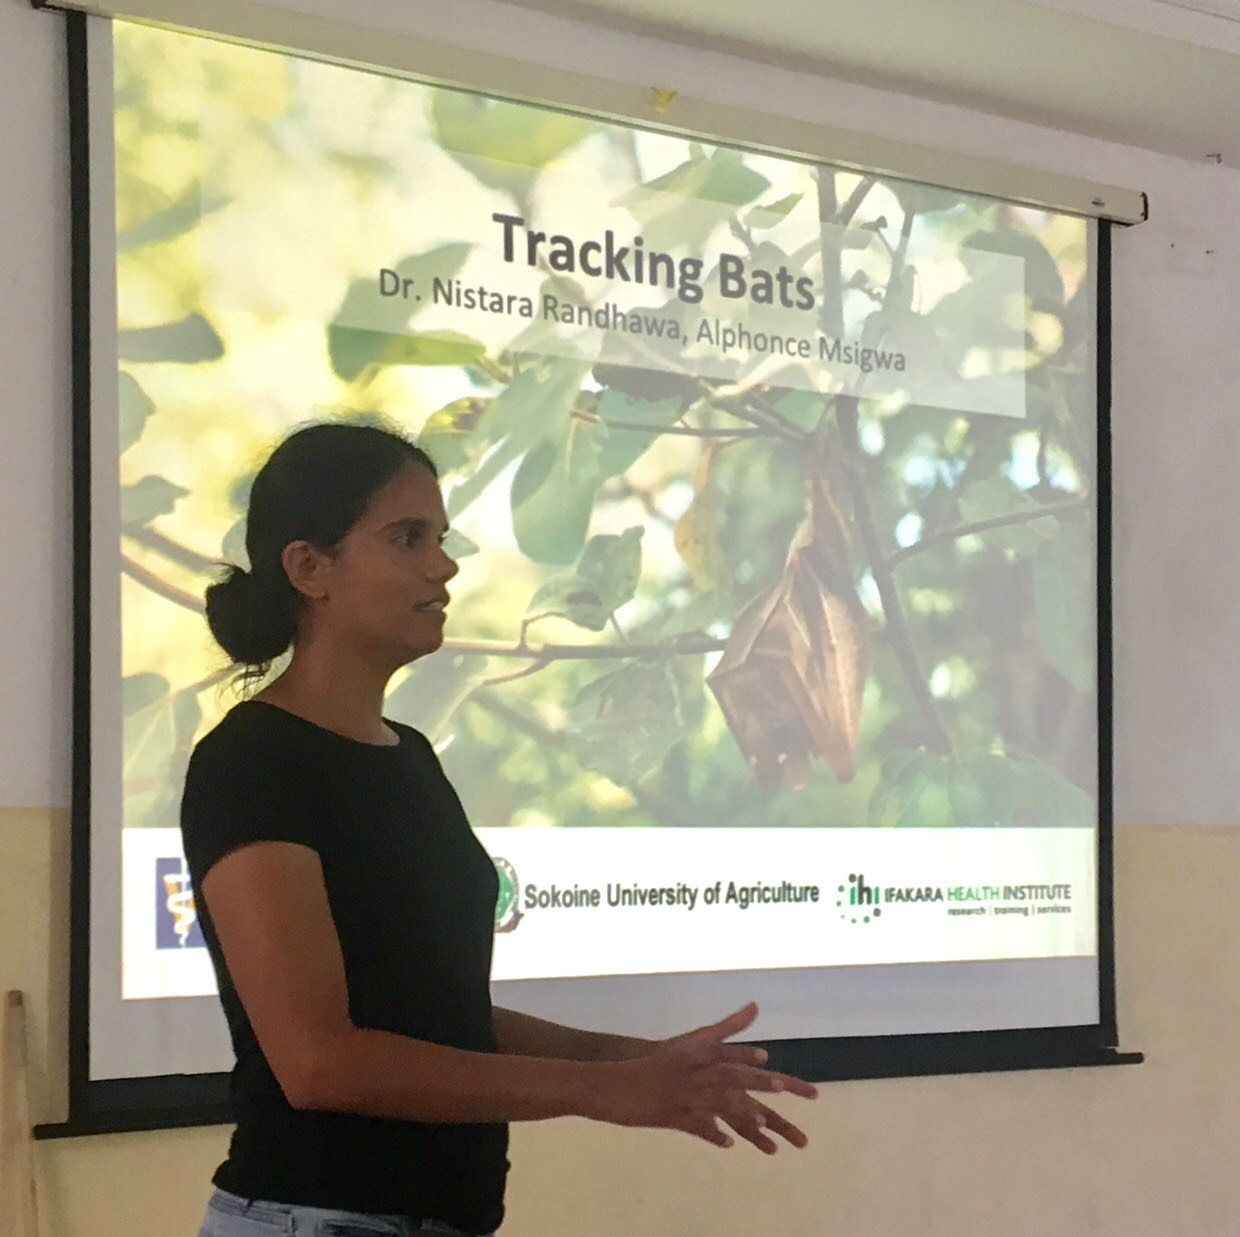 Nistara, a PhD student from UC Davis presenting data from some really fascinating bat tracking studies.